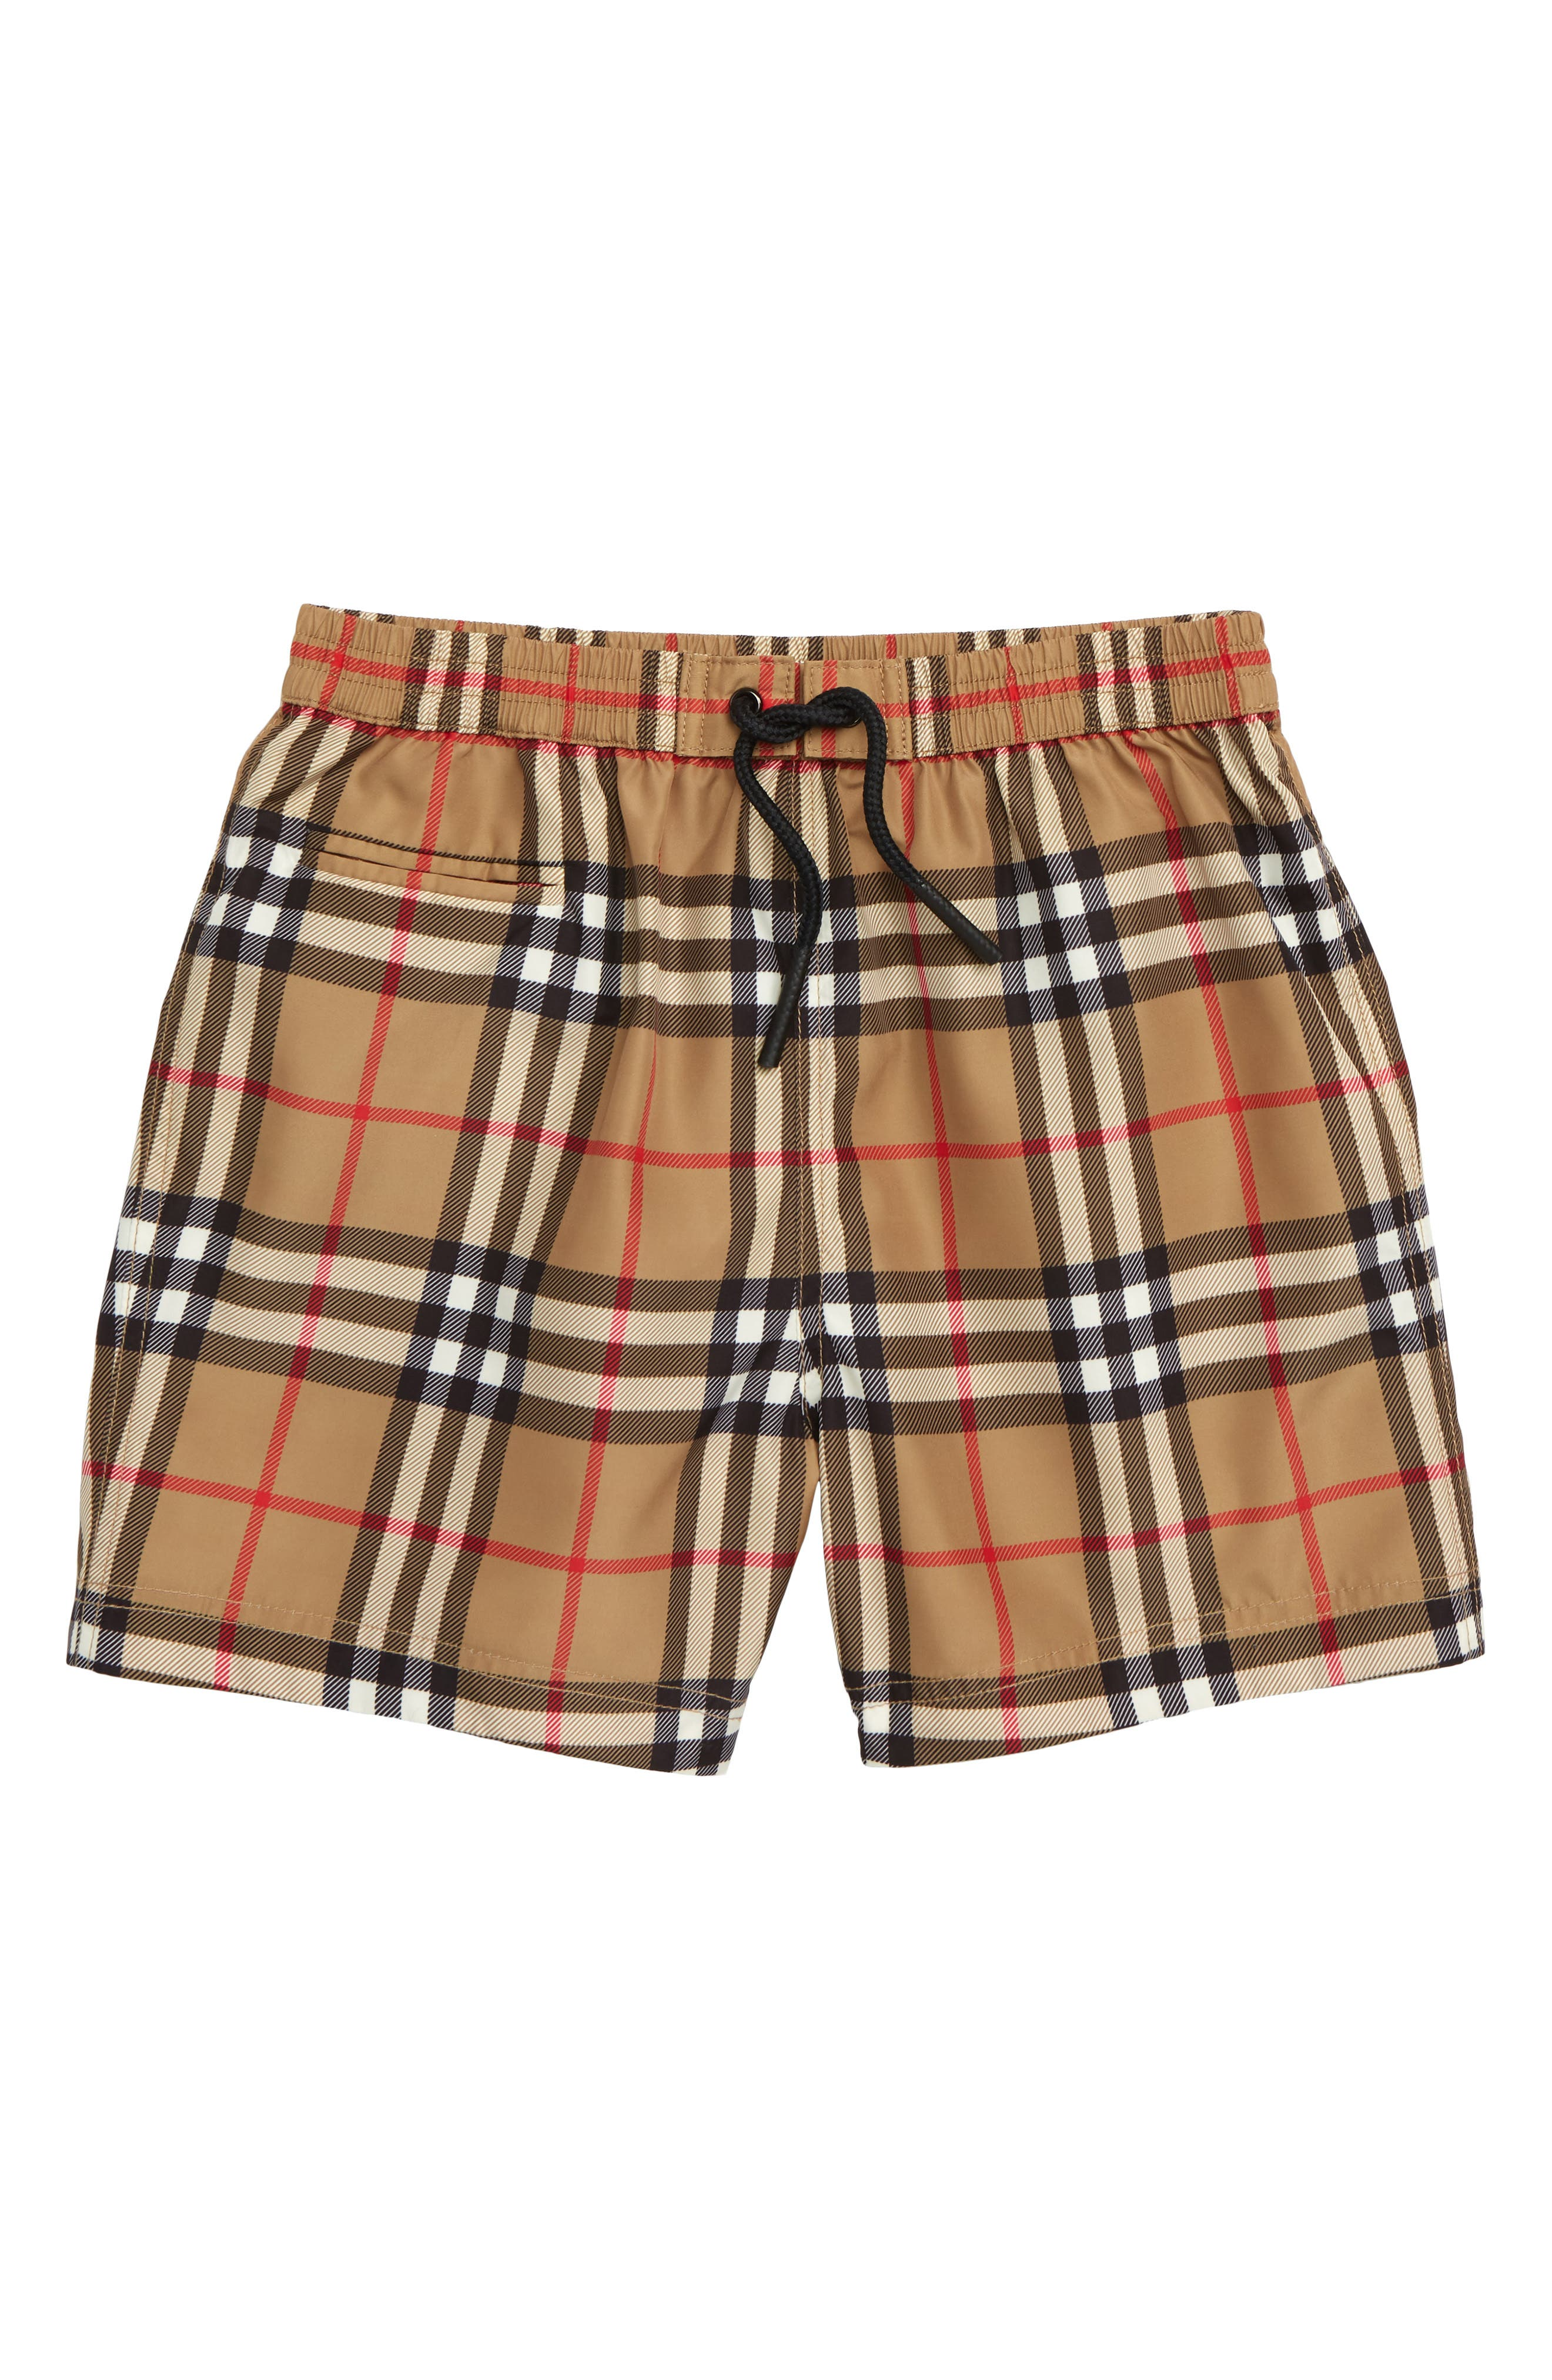 Galvin Check Swim Trunks,                         Main,                         color, ANTIQUE YELLOW